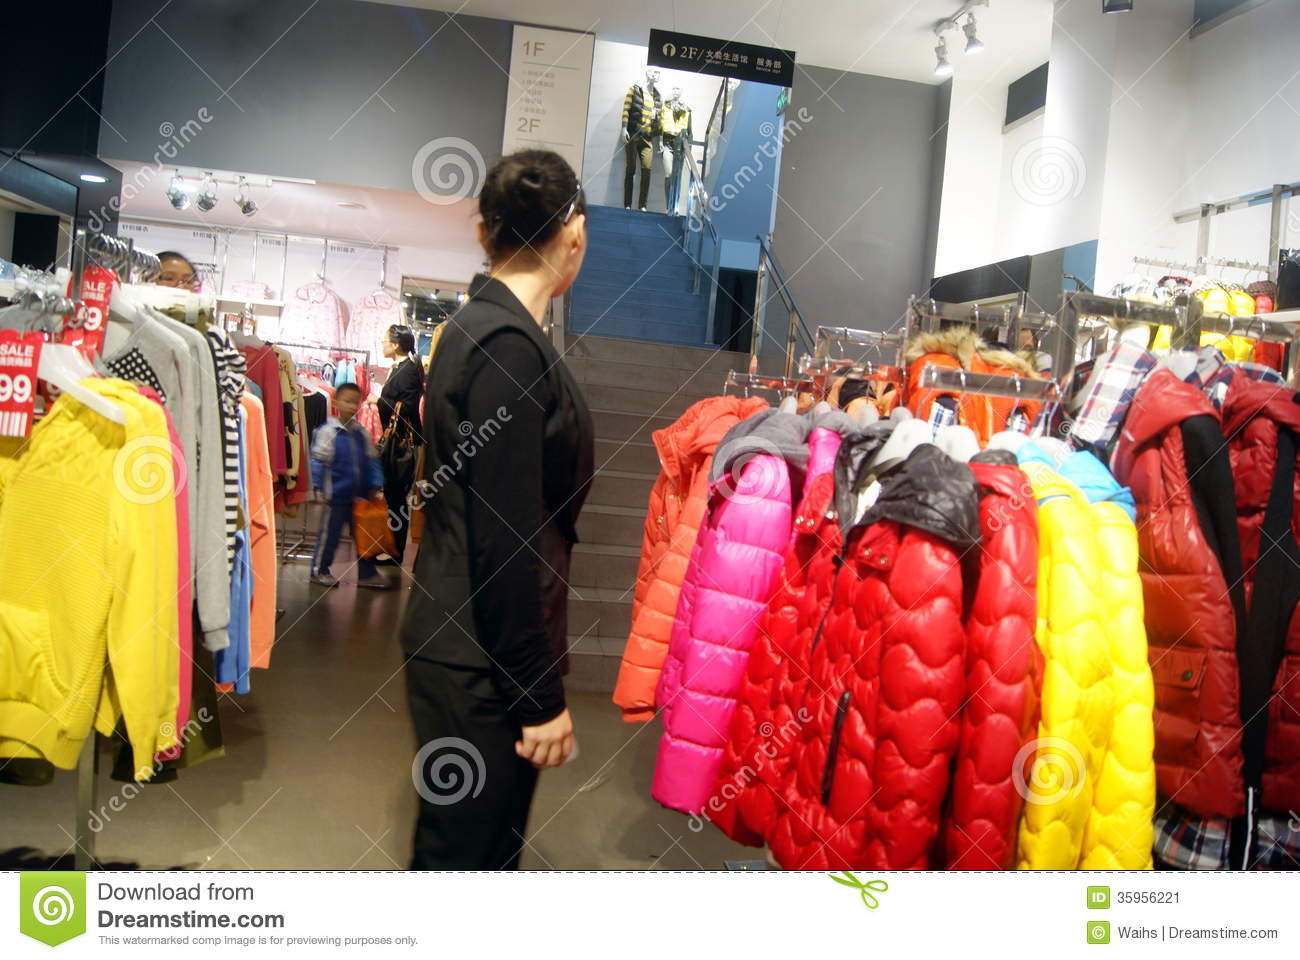 Winter clothing stores. Clothing stores online